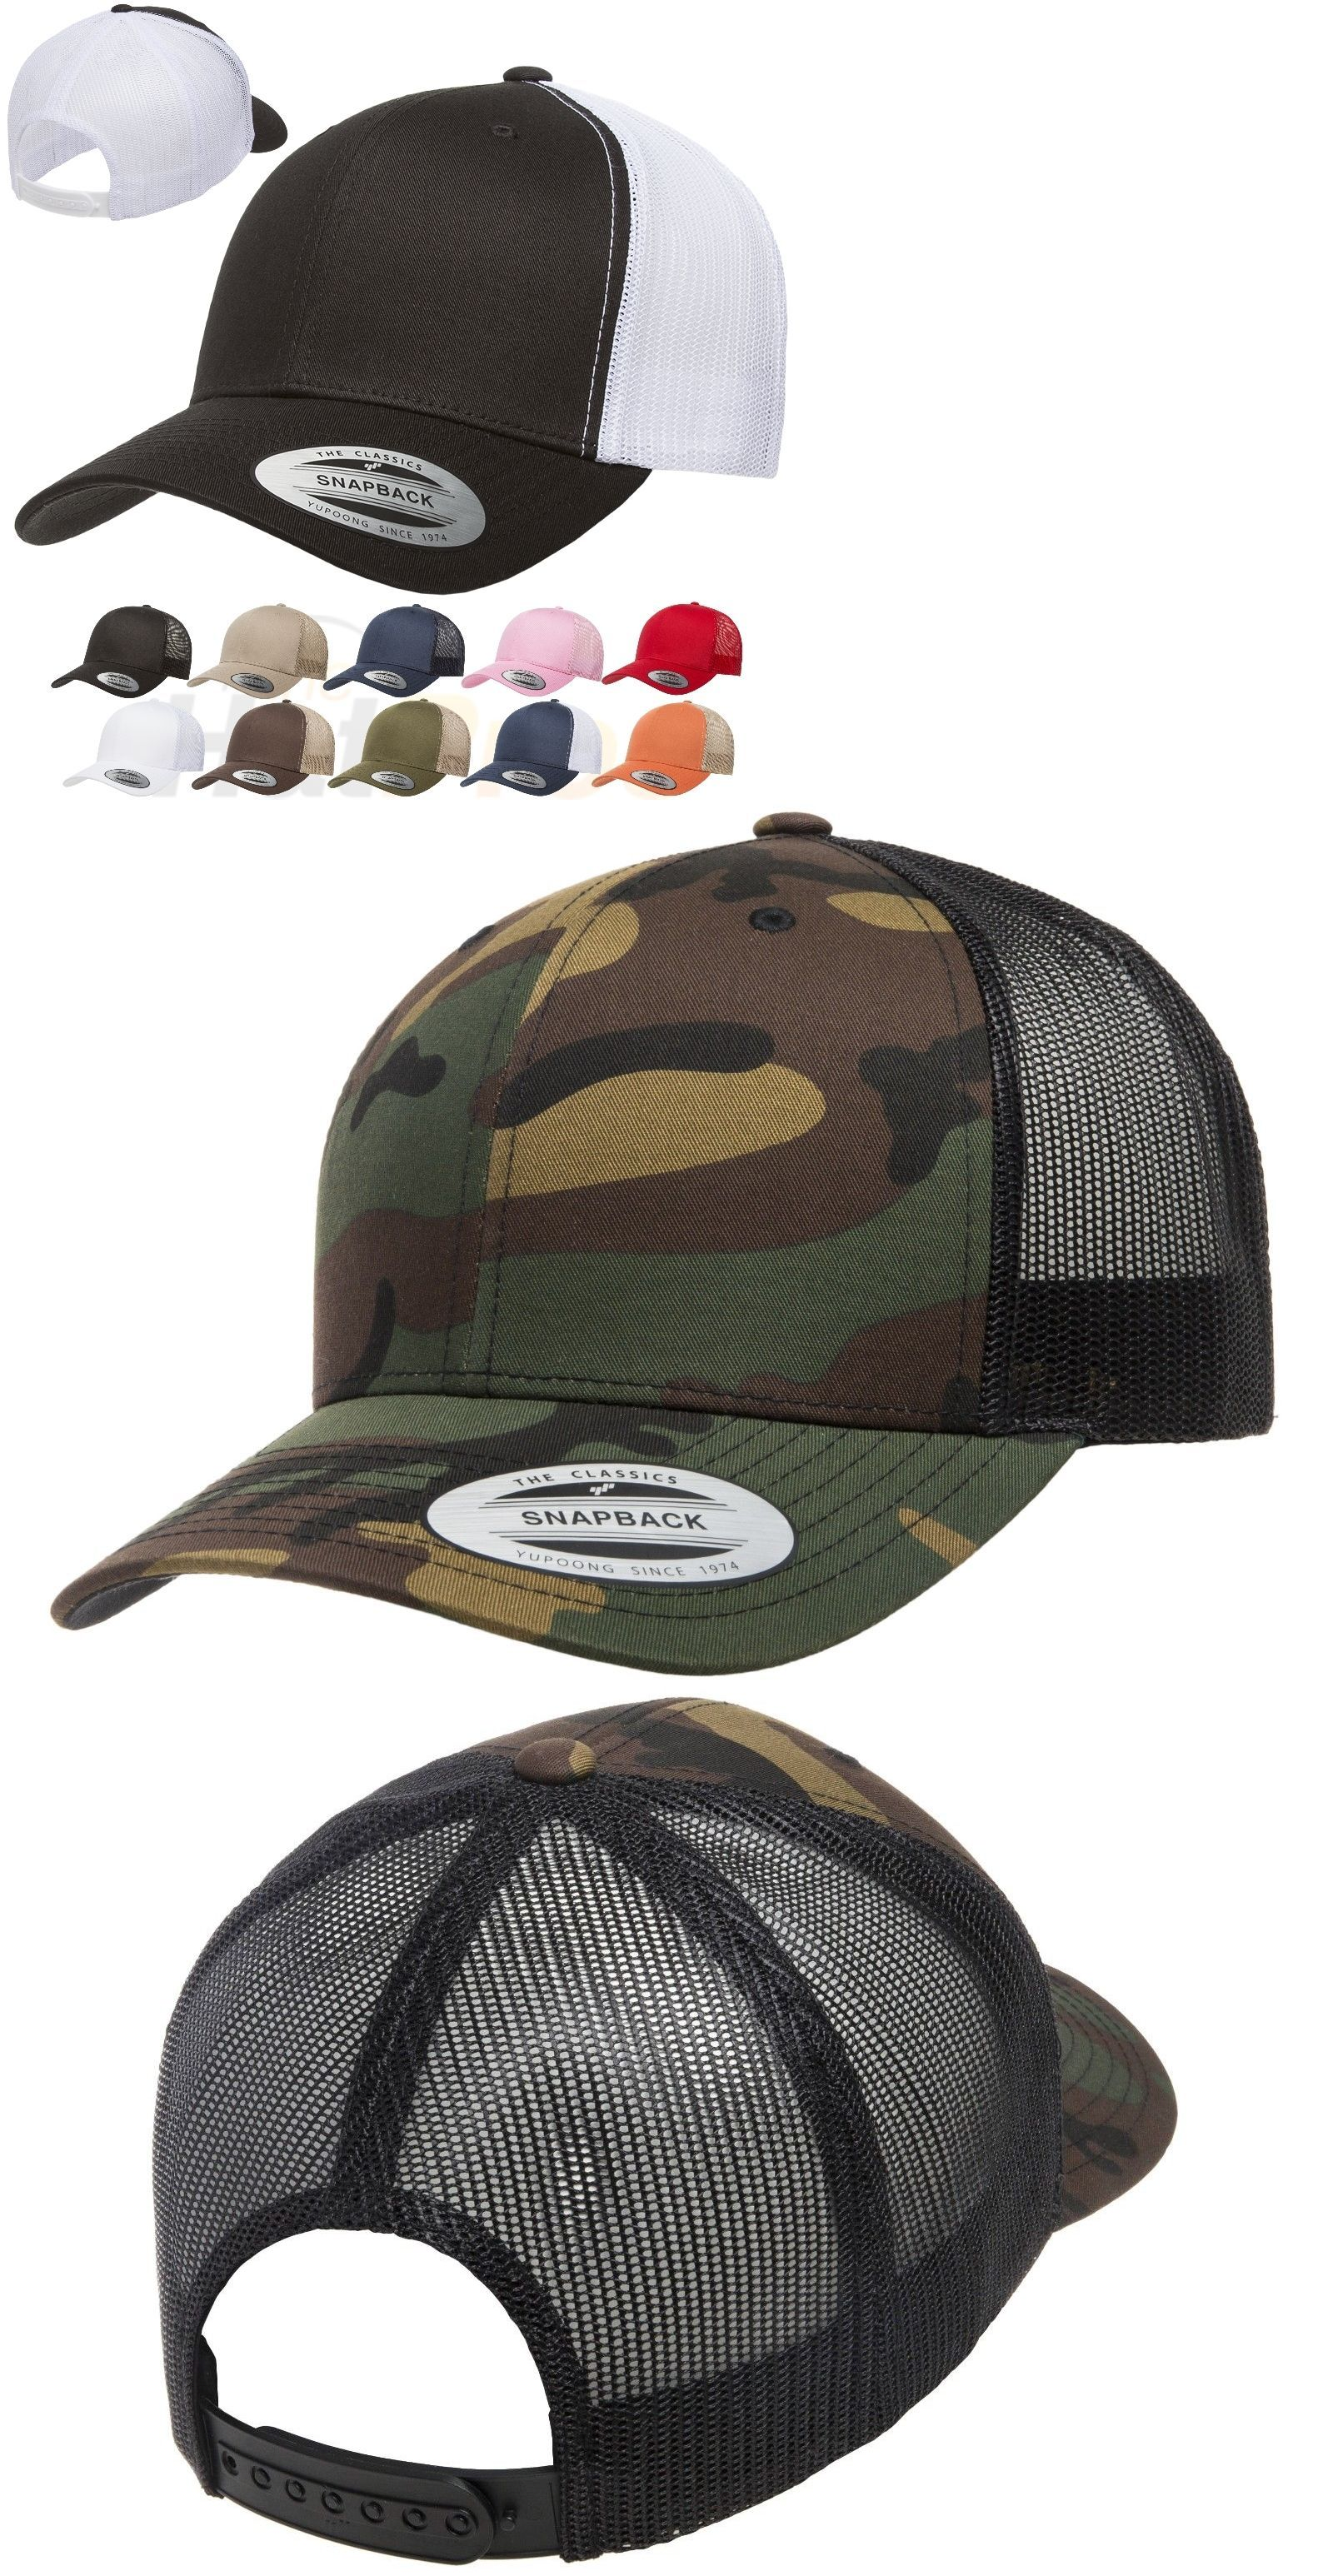 74efda61fcc Hats 52365  Yupoong Classic Blank Retro Cotton Trucker Mesh Cap Snapback Hat  6606 And 6606T -  BUY IT NOW ONLY   21.8 on  eBay  yupoong  classic  blank  ...